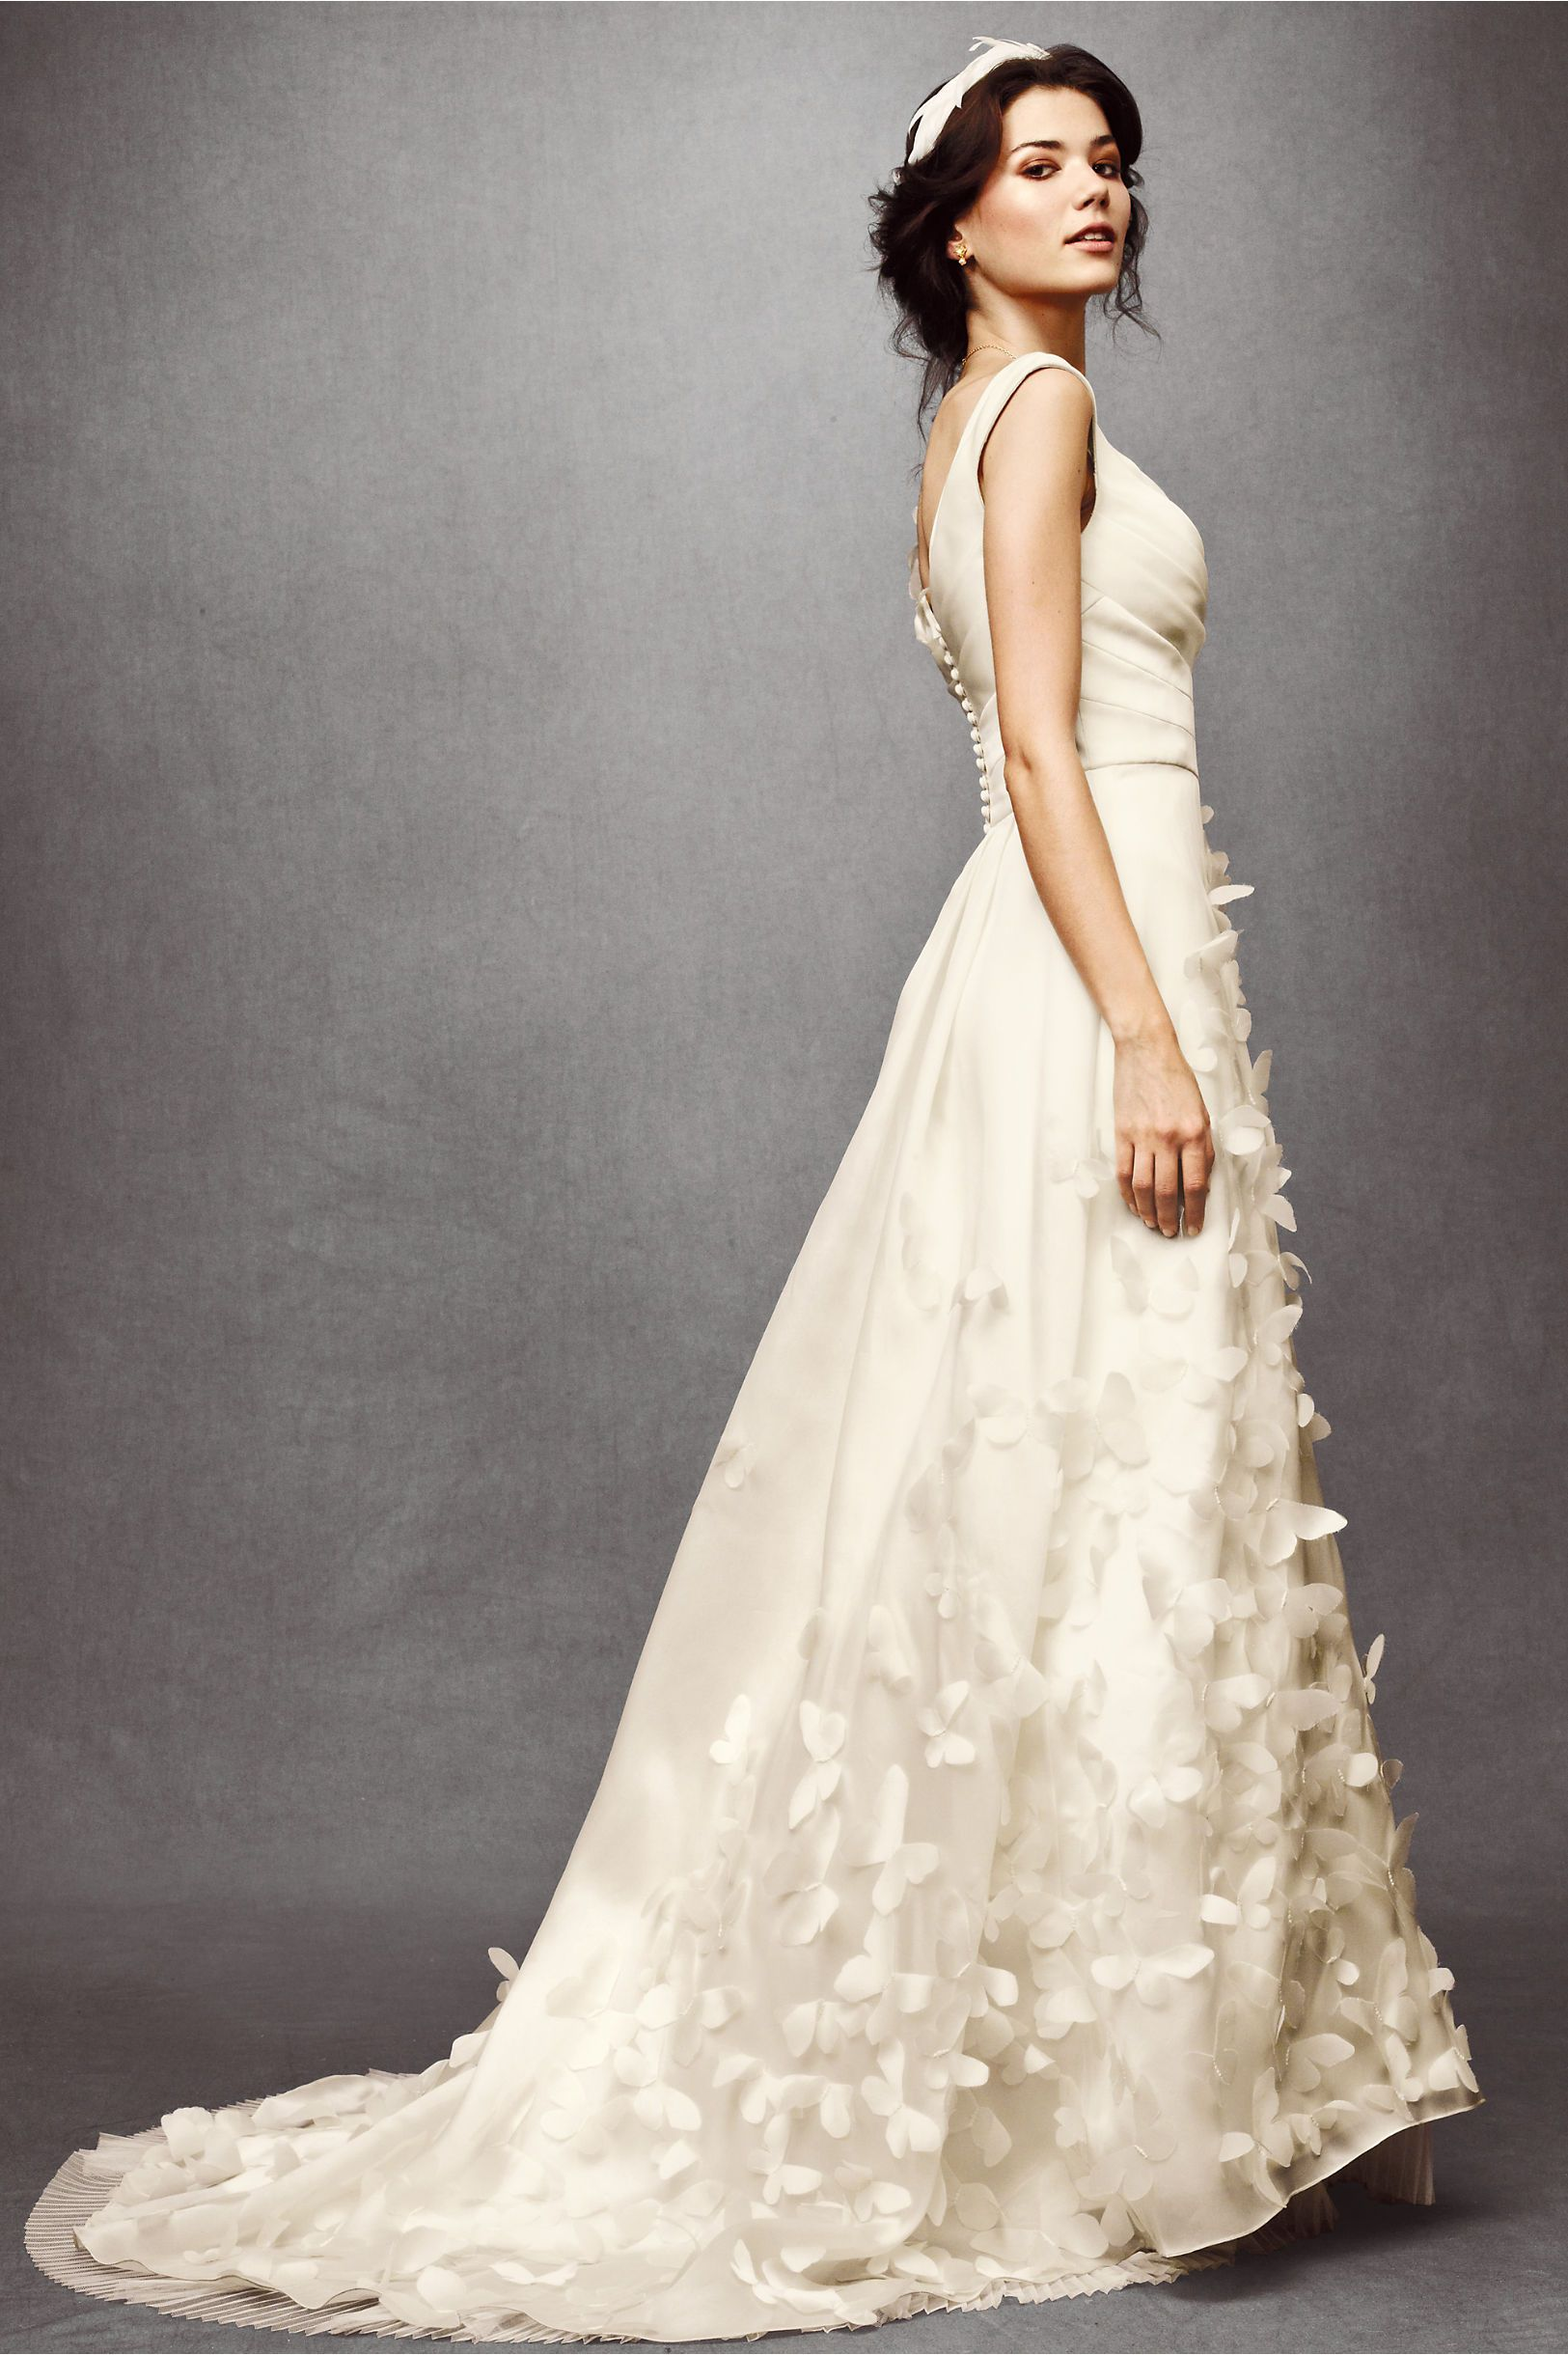 Popular Ethereal Monarch Gown in SHOP The Bride Wedding Dresses at BHLDN